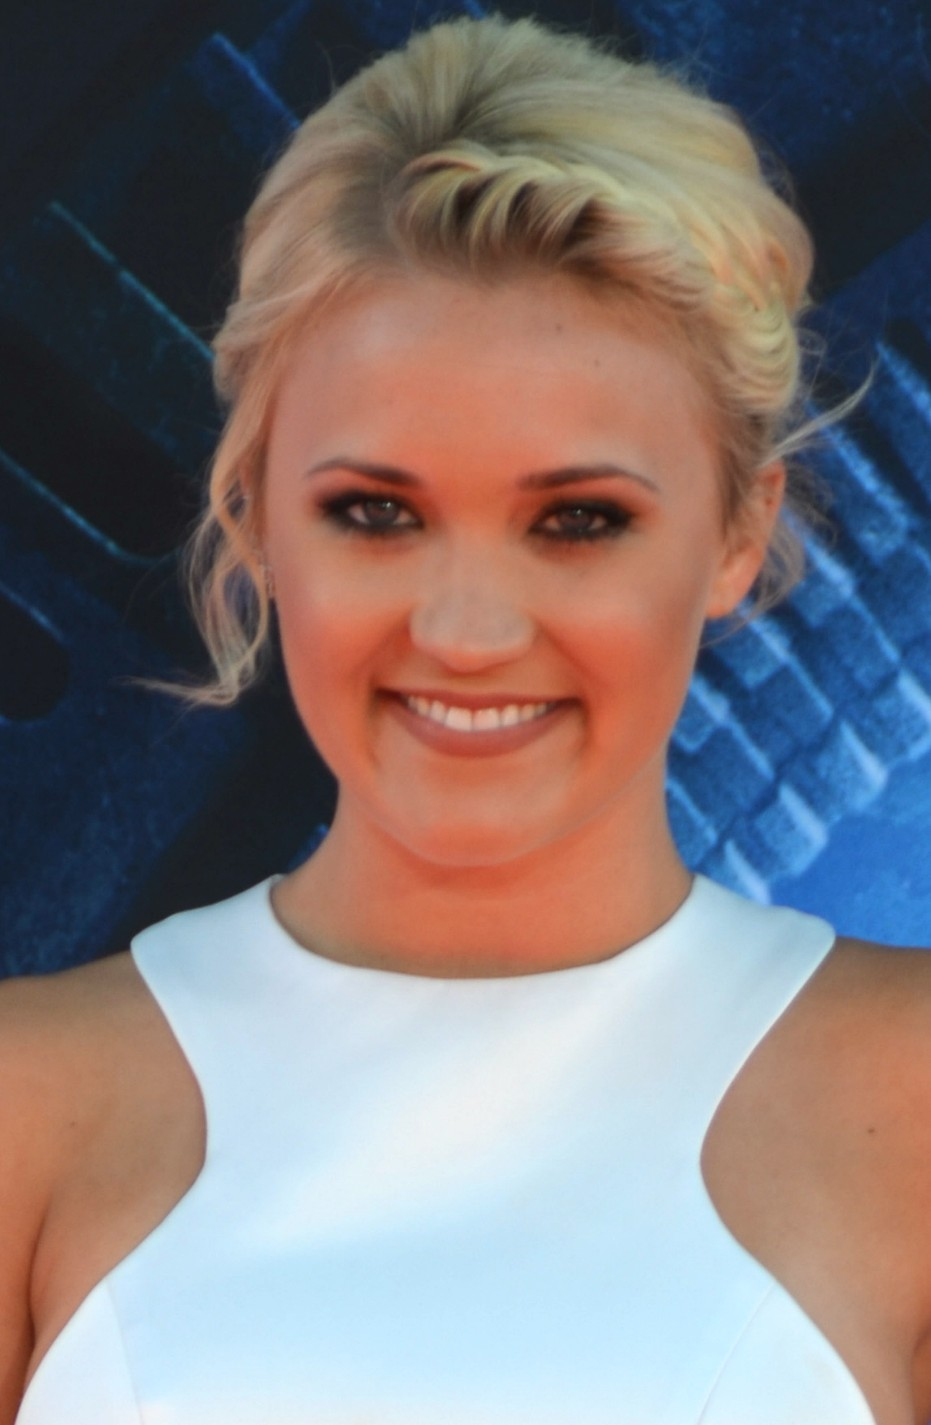 Pics Emily Osment nudes (93 photo), Tits, Cleavage, Boobs, lingerie 2006